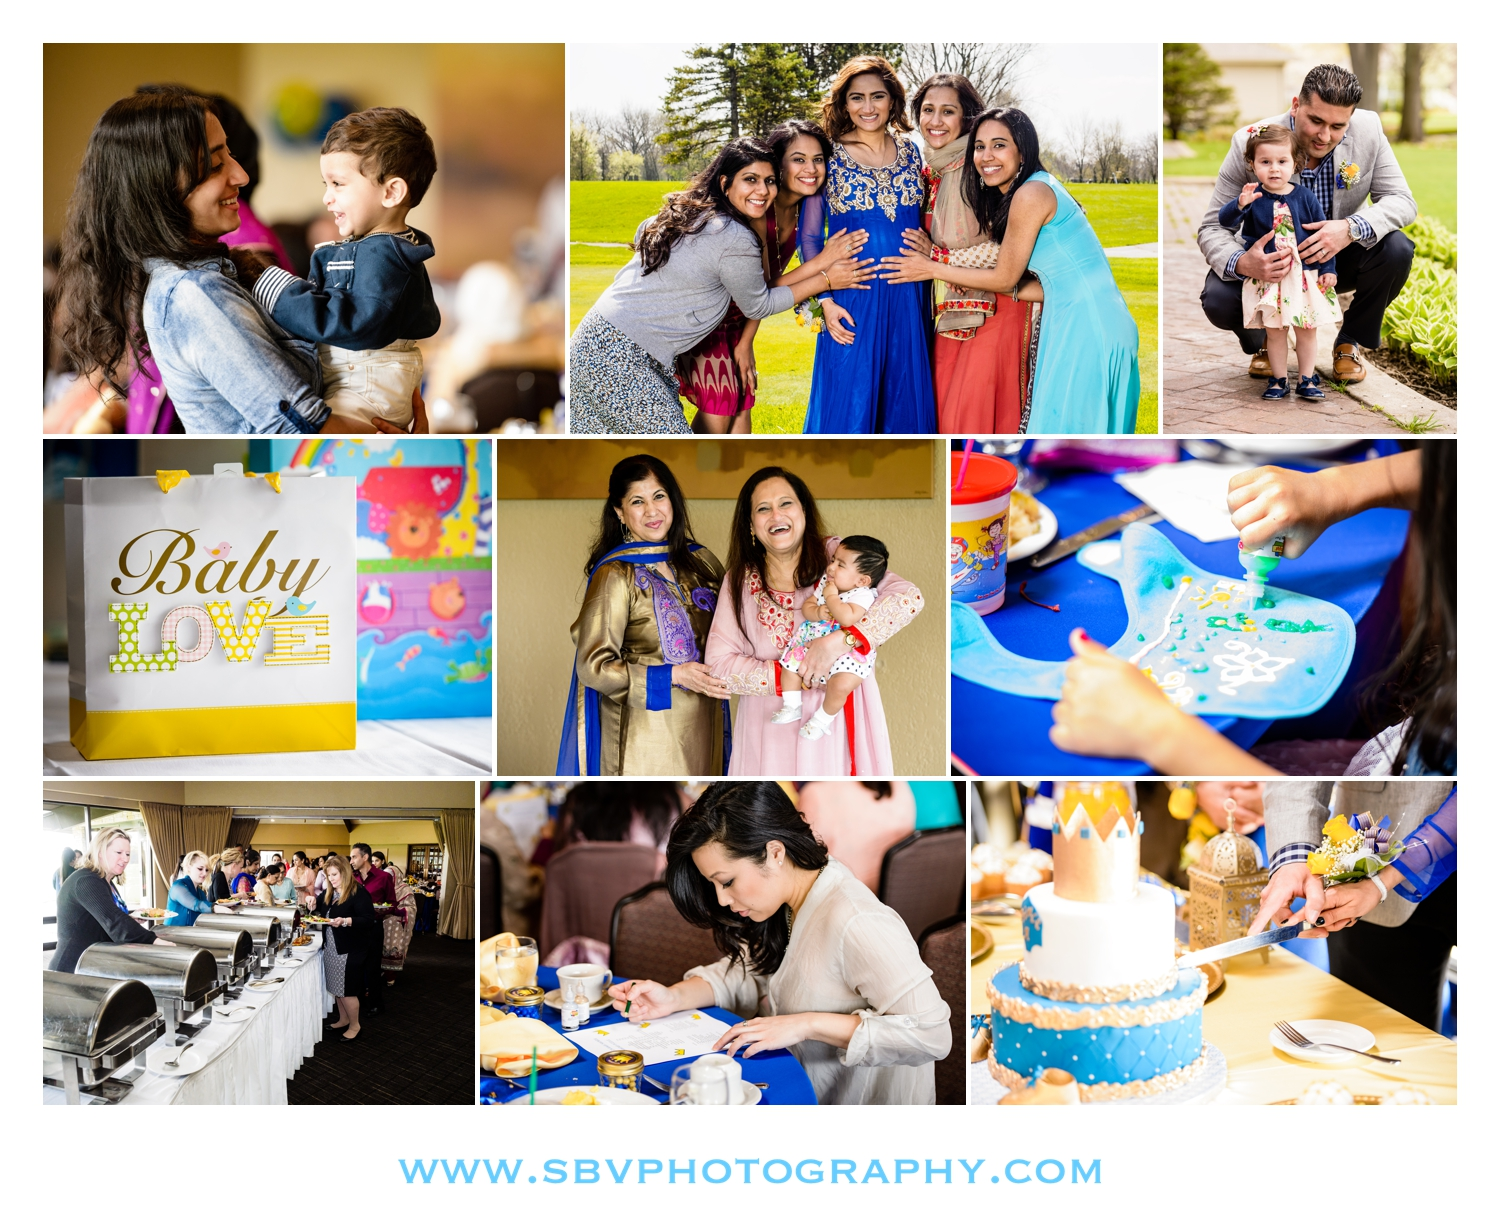 Baby shower celebration at Briar Ridge Country Club.